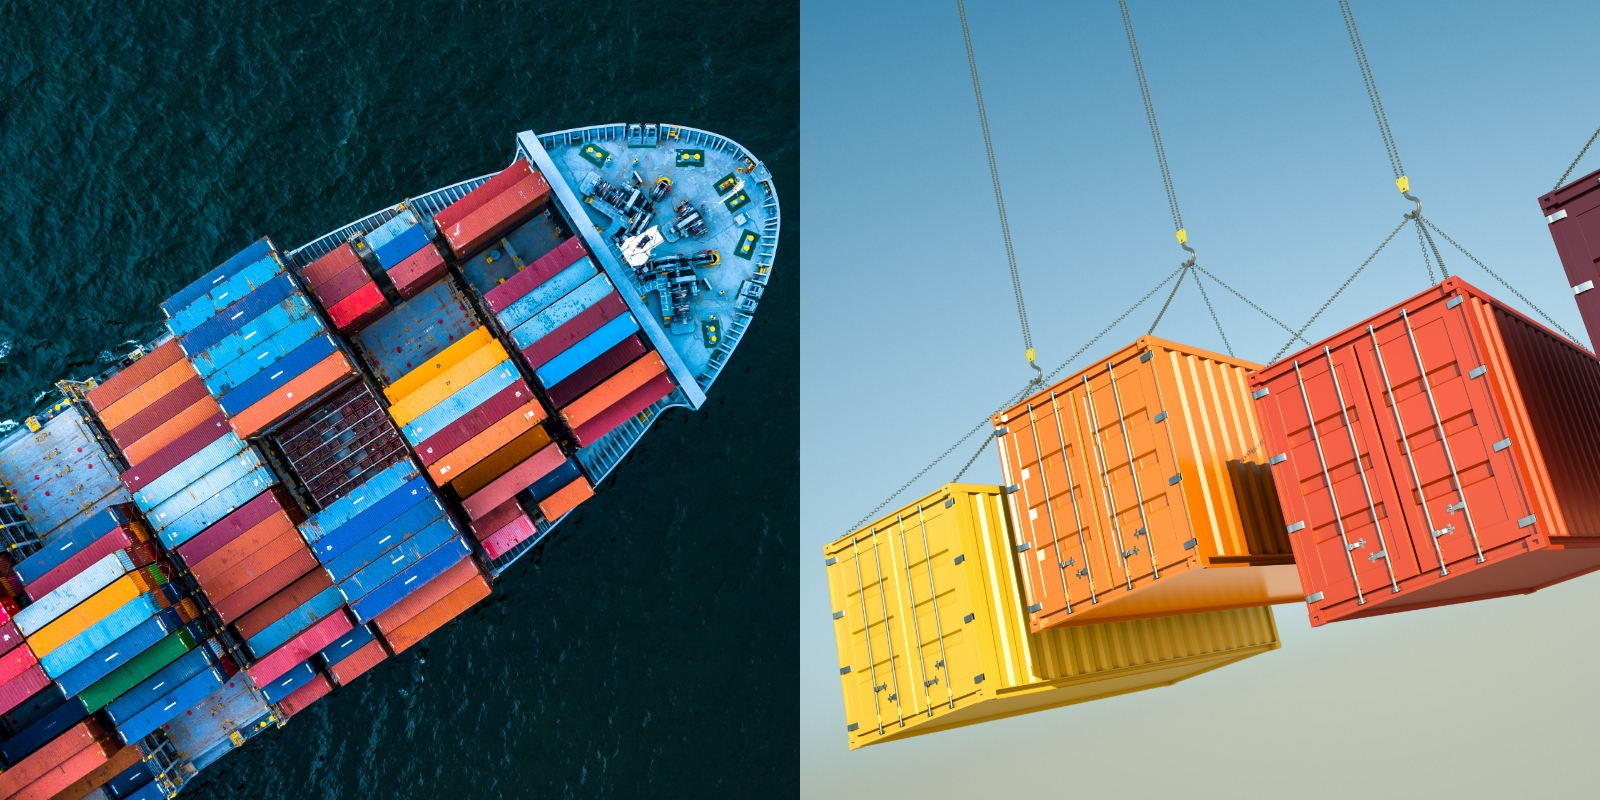 Second Forwarding & Container